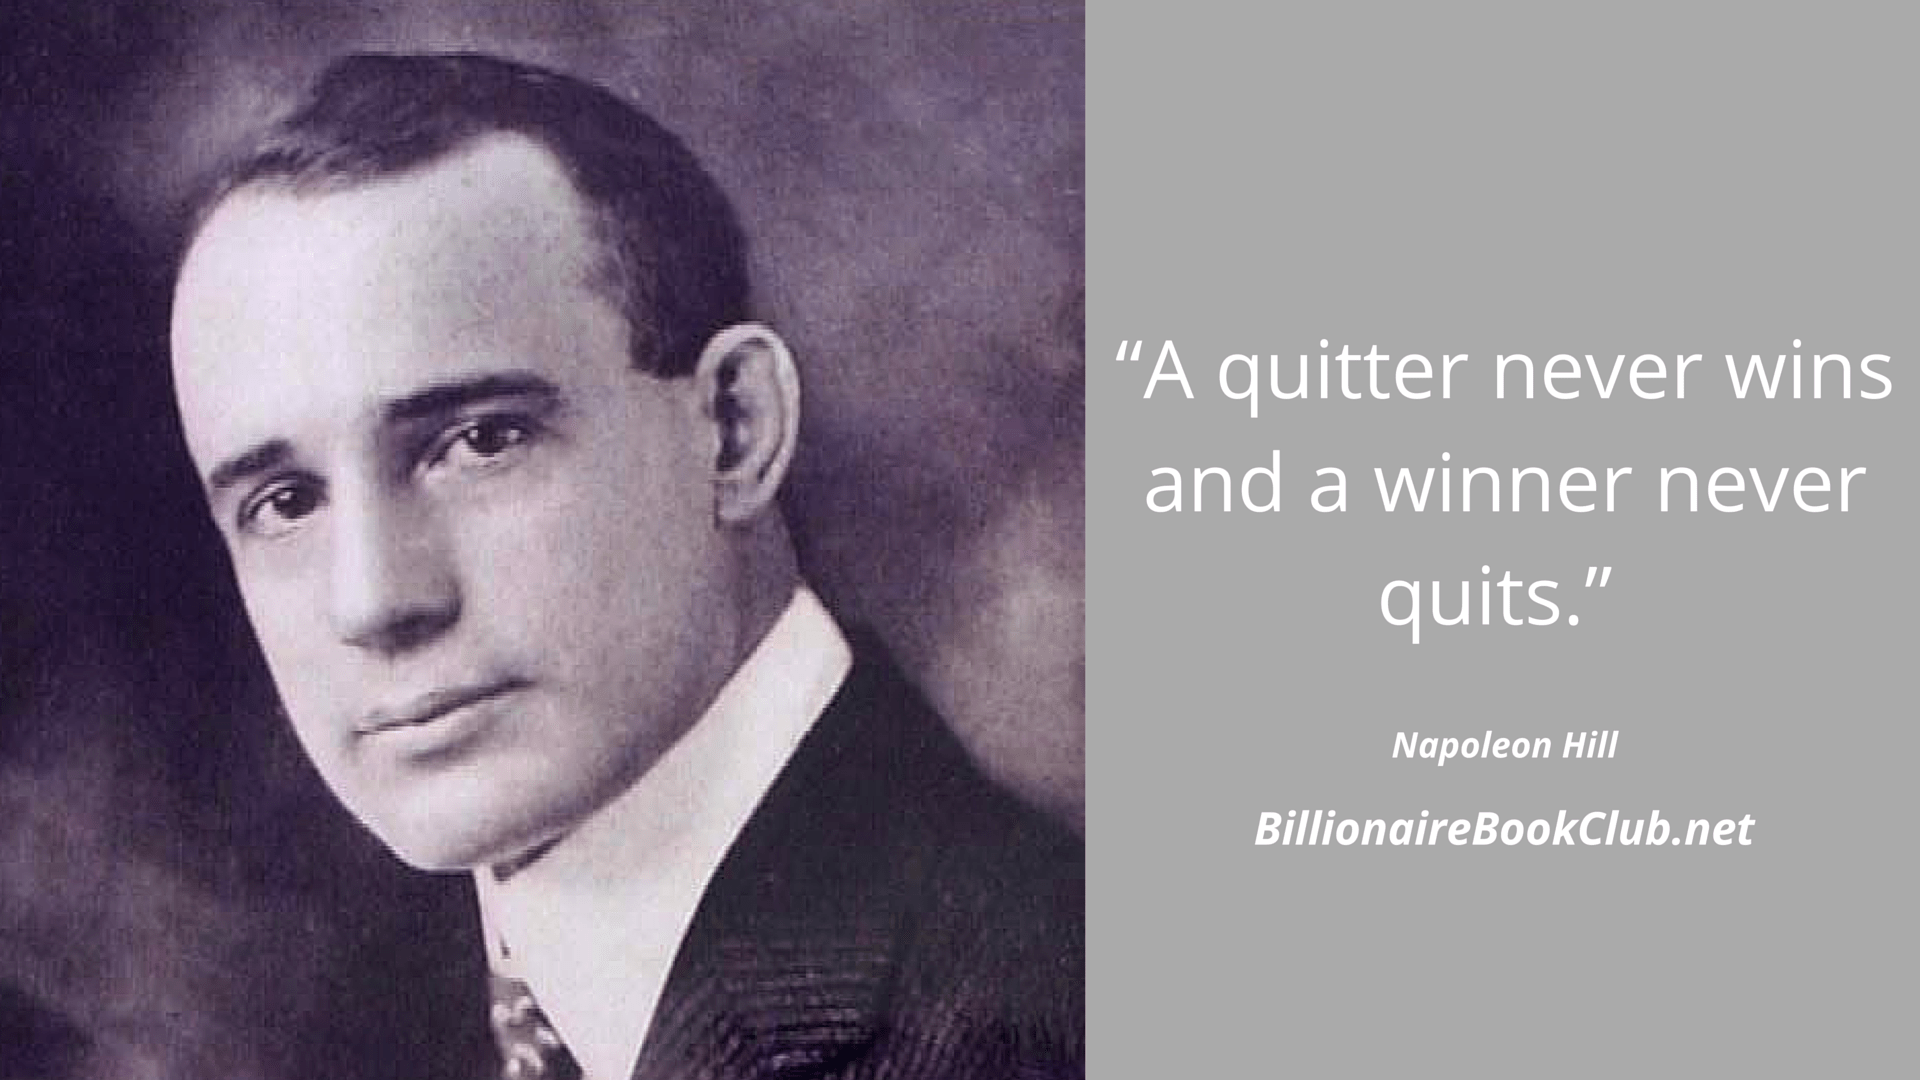 Napoleon Hill Winners never quit